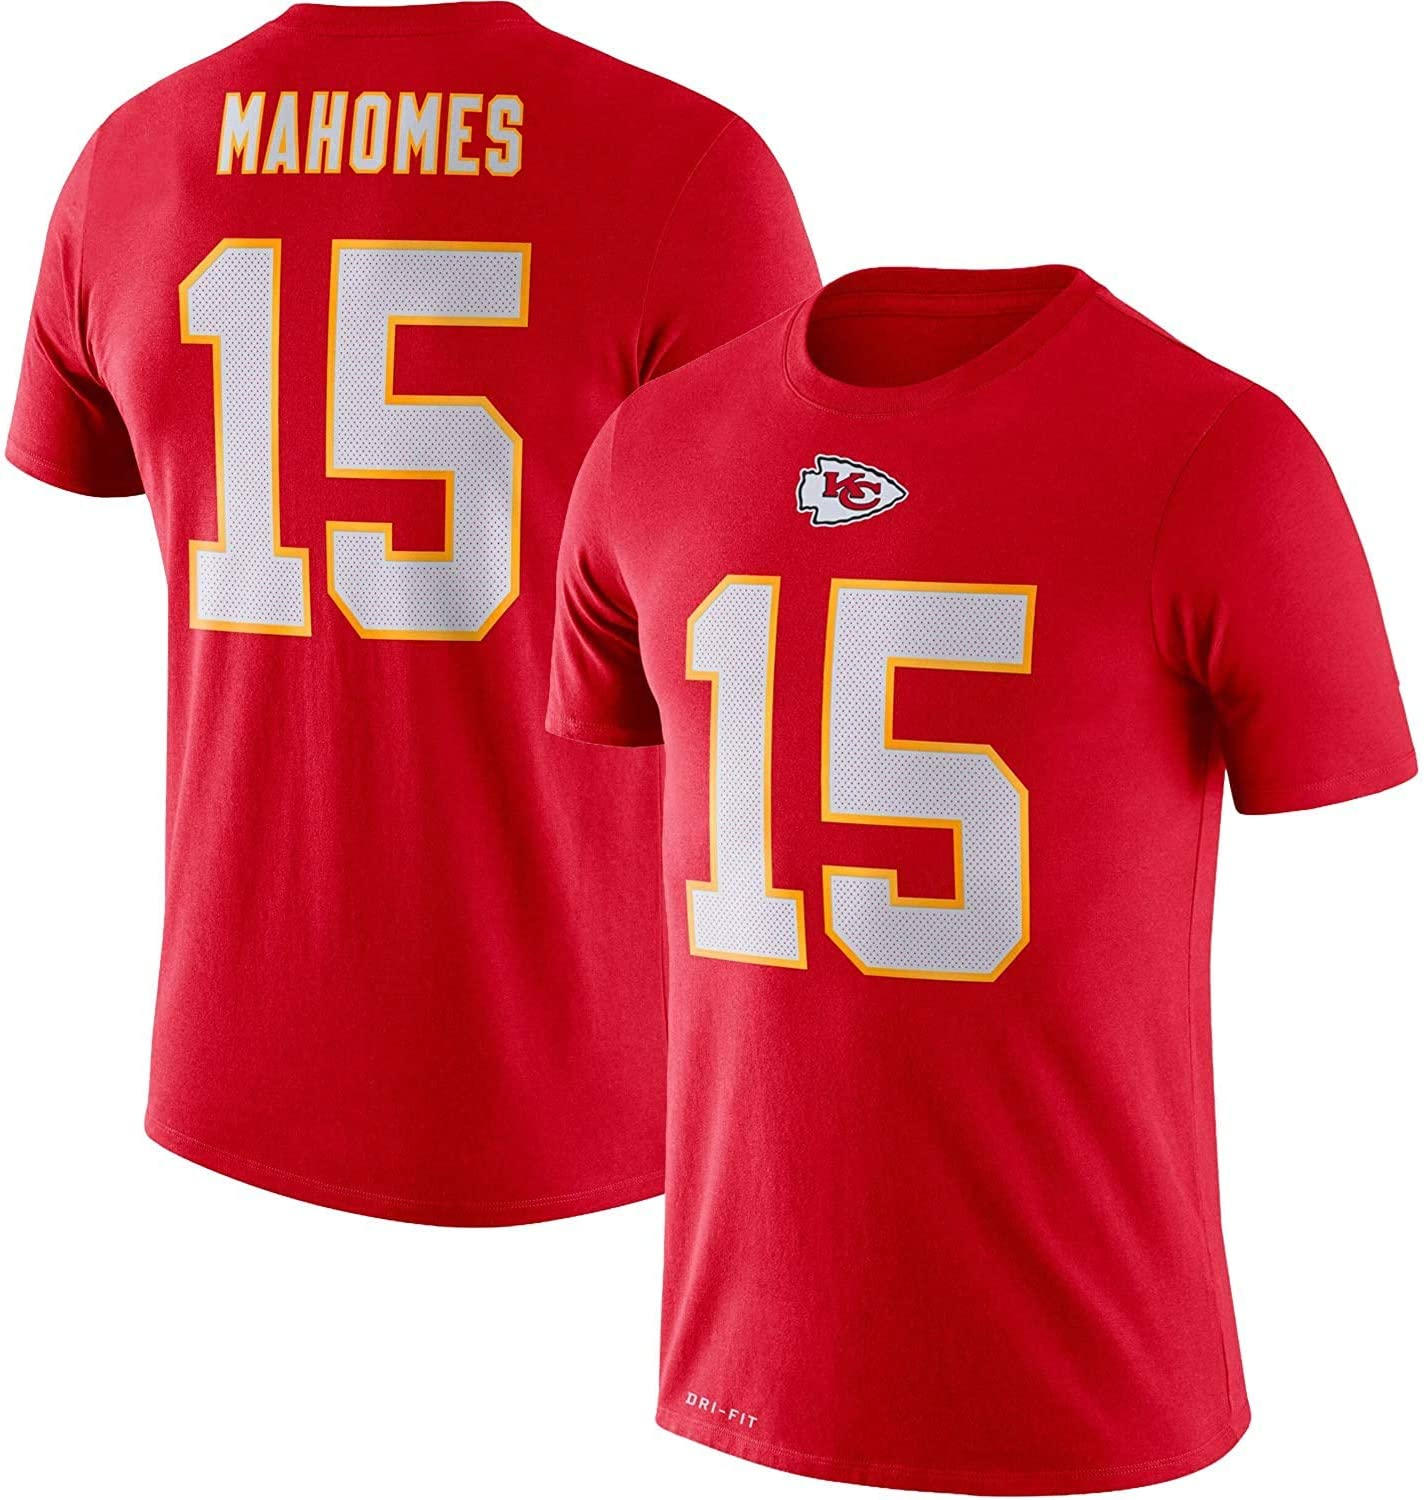 Outerstuff Patrick Mahomes Kansas City Chiefs Red Kids 4-7 Dri Fit Pride Name and Number Jersey T-Shirt